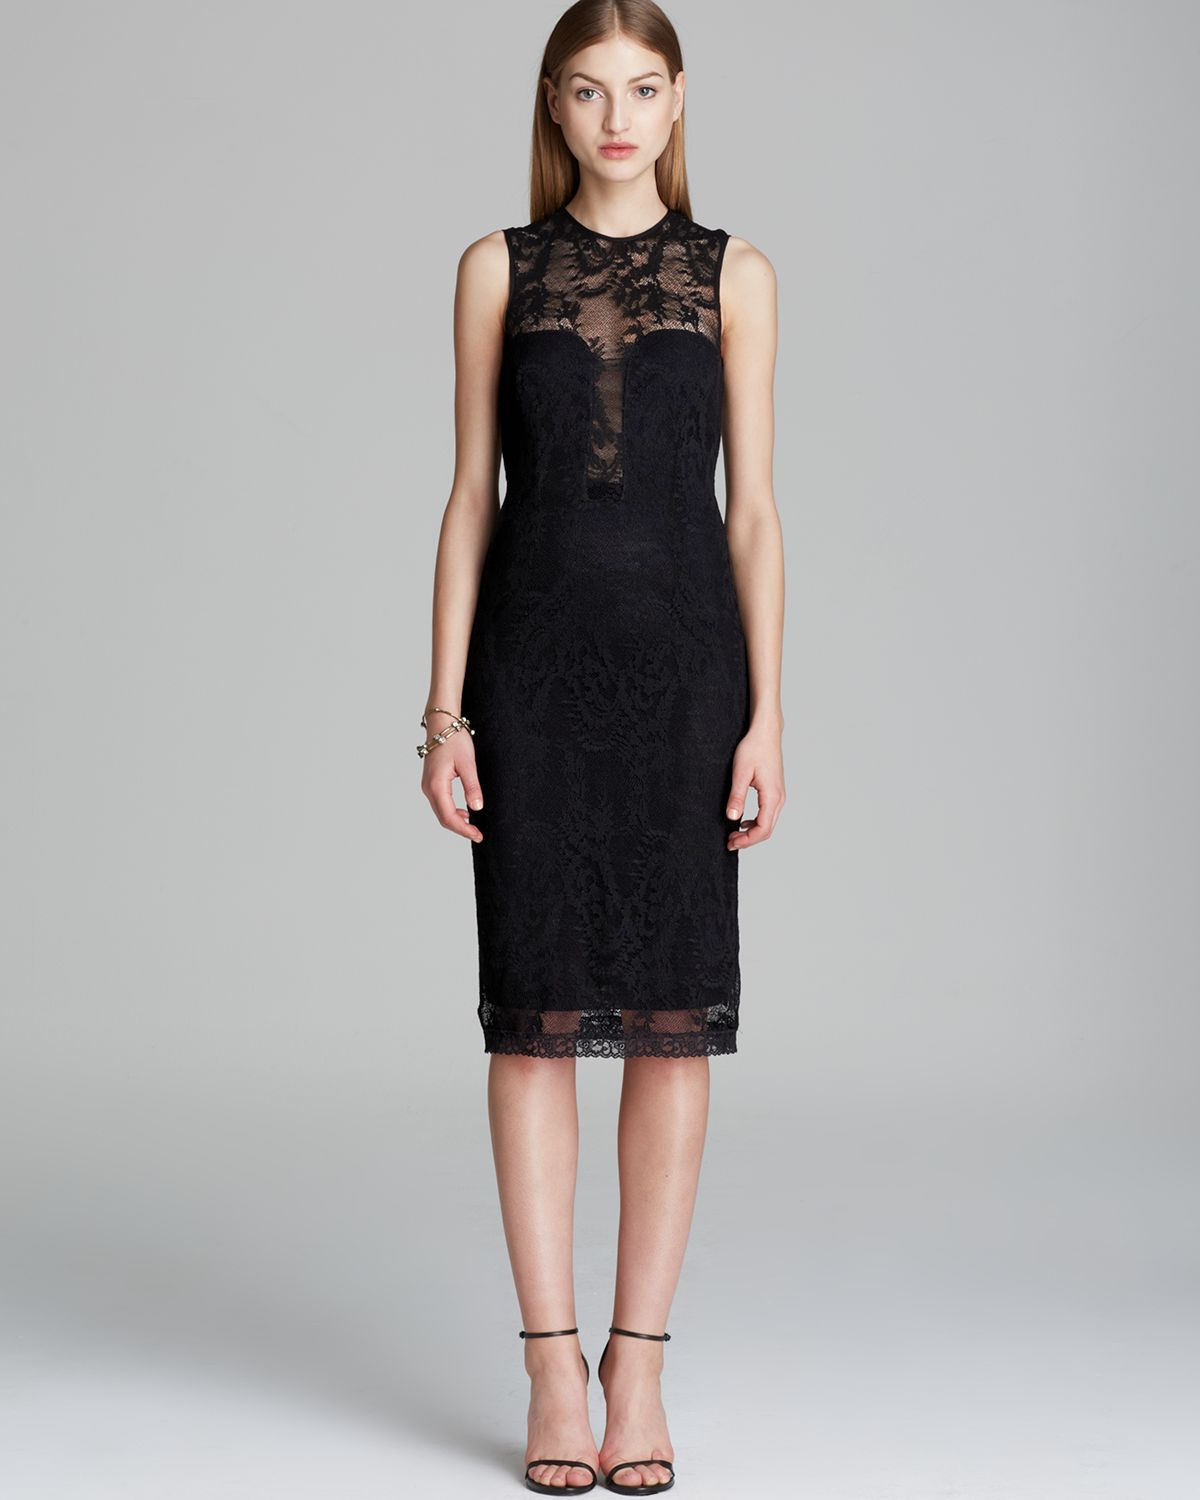 Nicole miller Dress Illusion Stretch Floral Lace in Black | Lyst